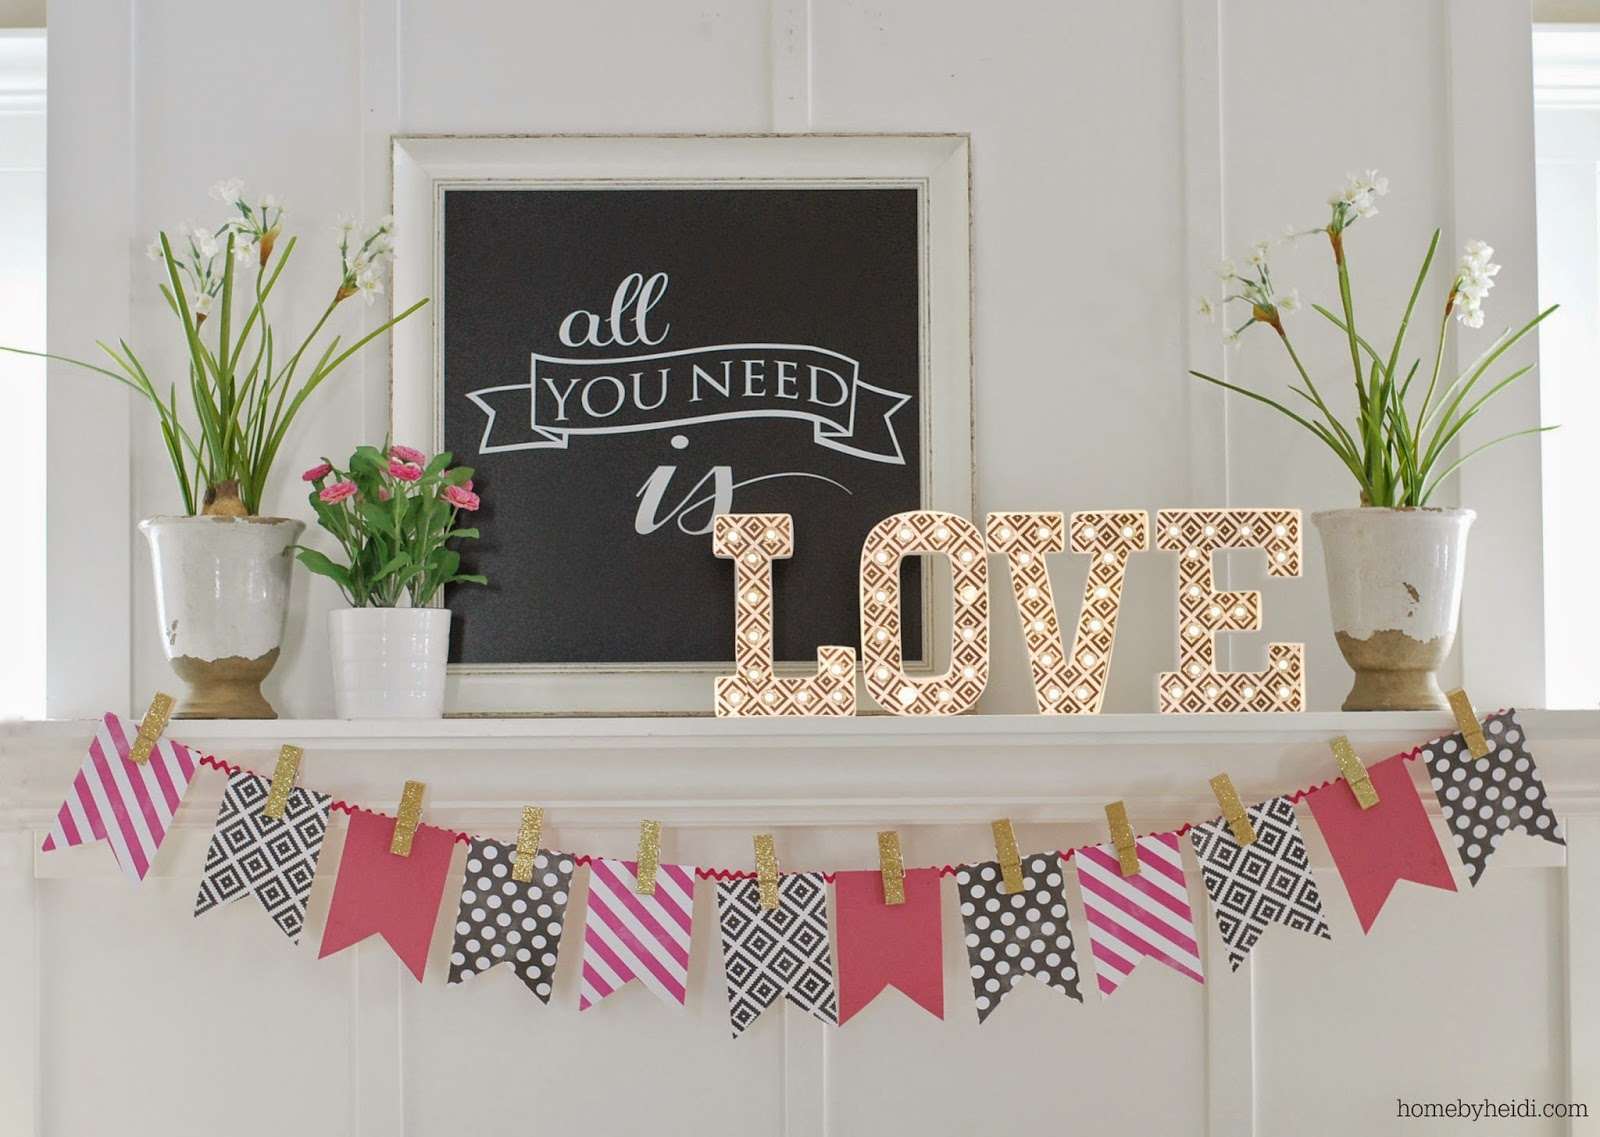 23 Stunningly Beautiful Decor Ideas For The Most: 15 Beautiful Valentine's Day Mantel Ideas